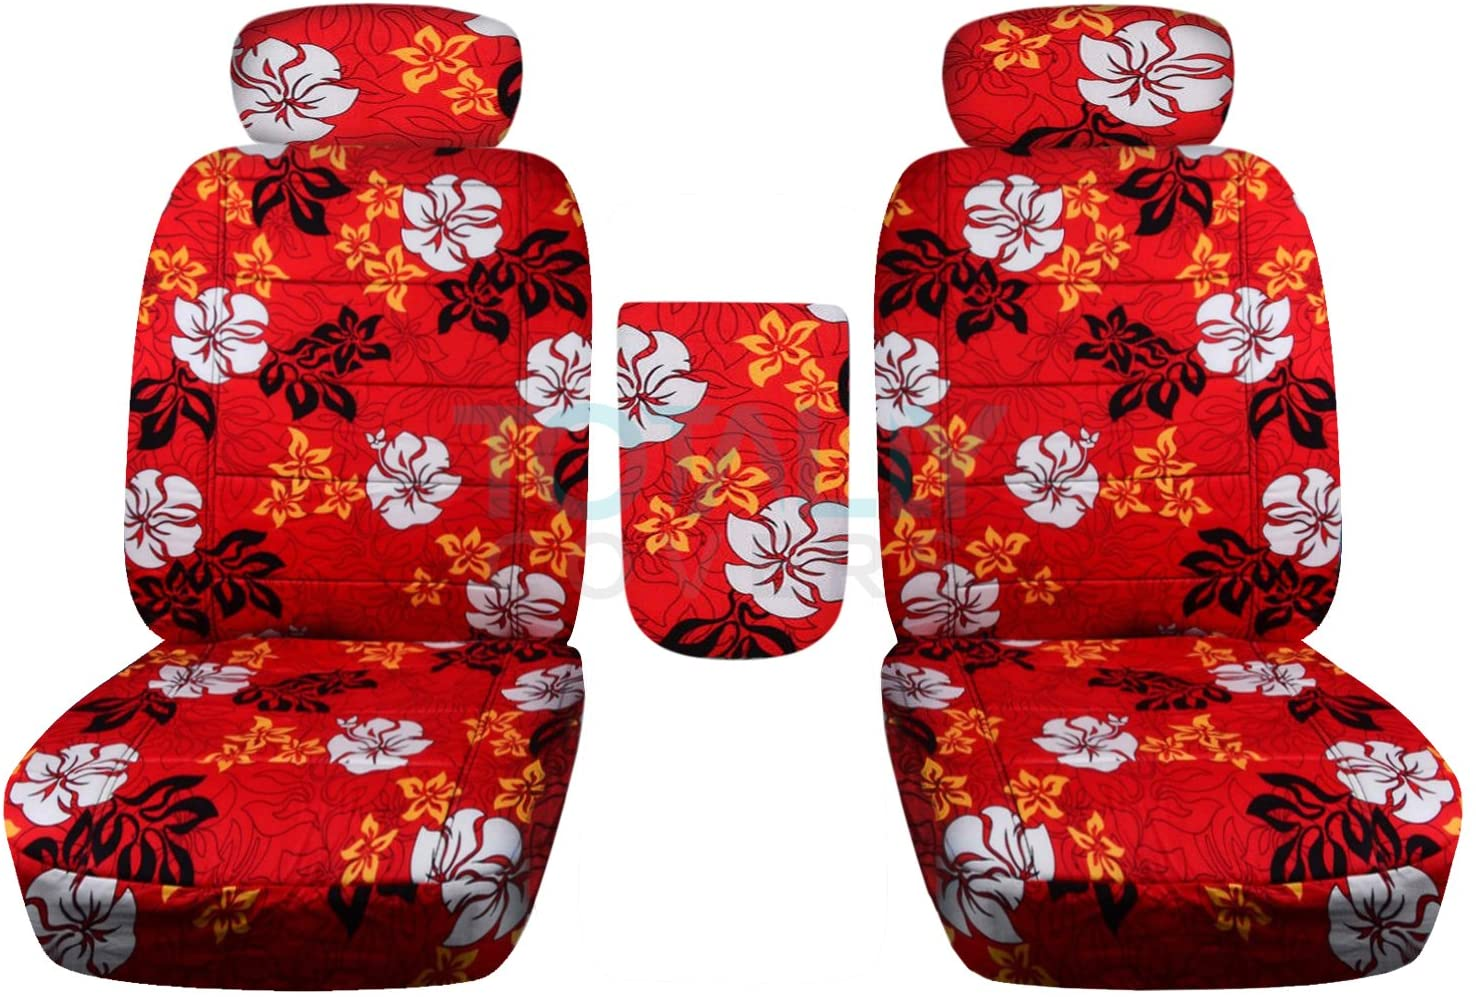 Totally Covers Compatible with 2001-2003 Ford F-150 Hawaiian Truck Bucket Seat Covers with Center Armrest, Adjustable Headrests, w/wo Integrated Seat Belts: Red with Flowers (4 Prints) F-Series F150